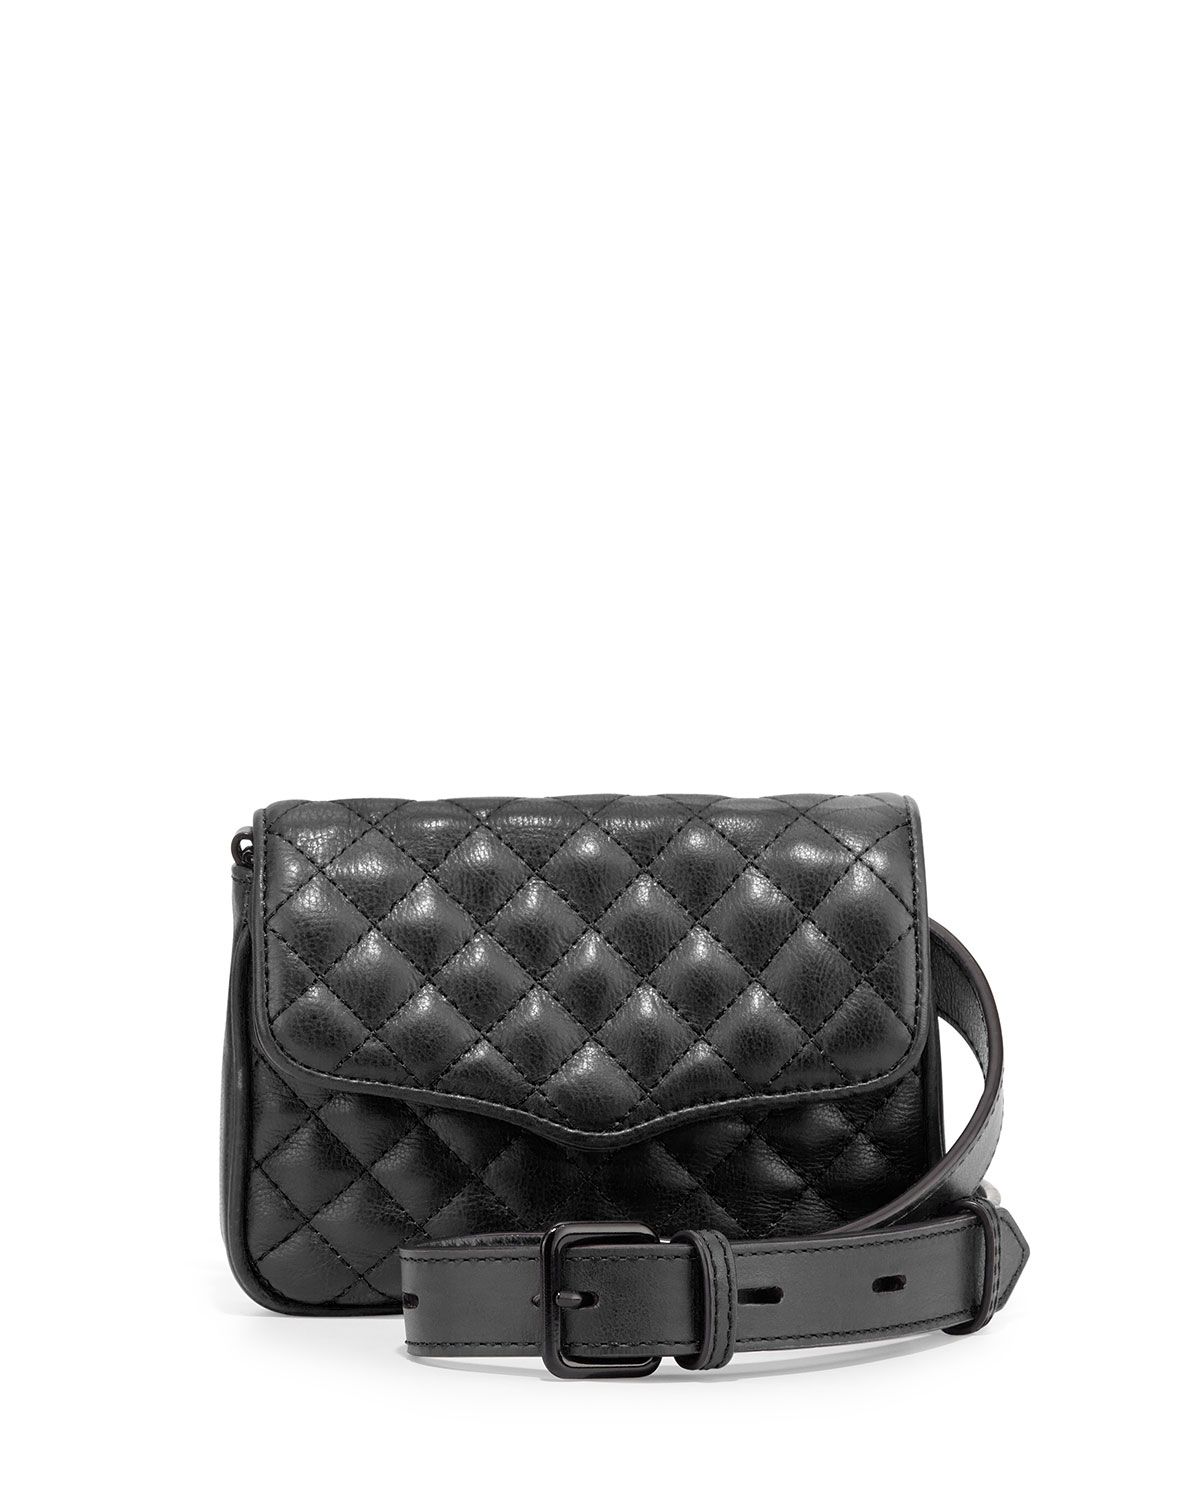 rebecca minkoff affair quilted leather flap top fanny pack